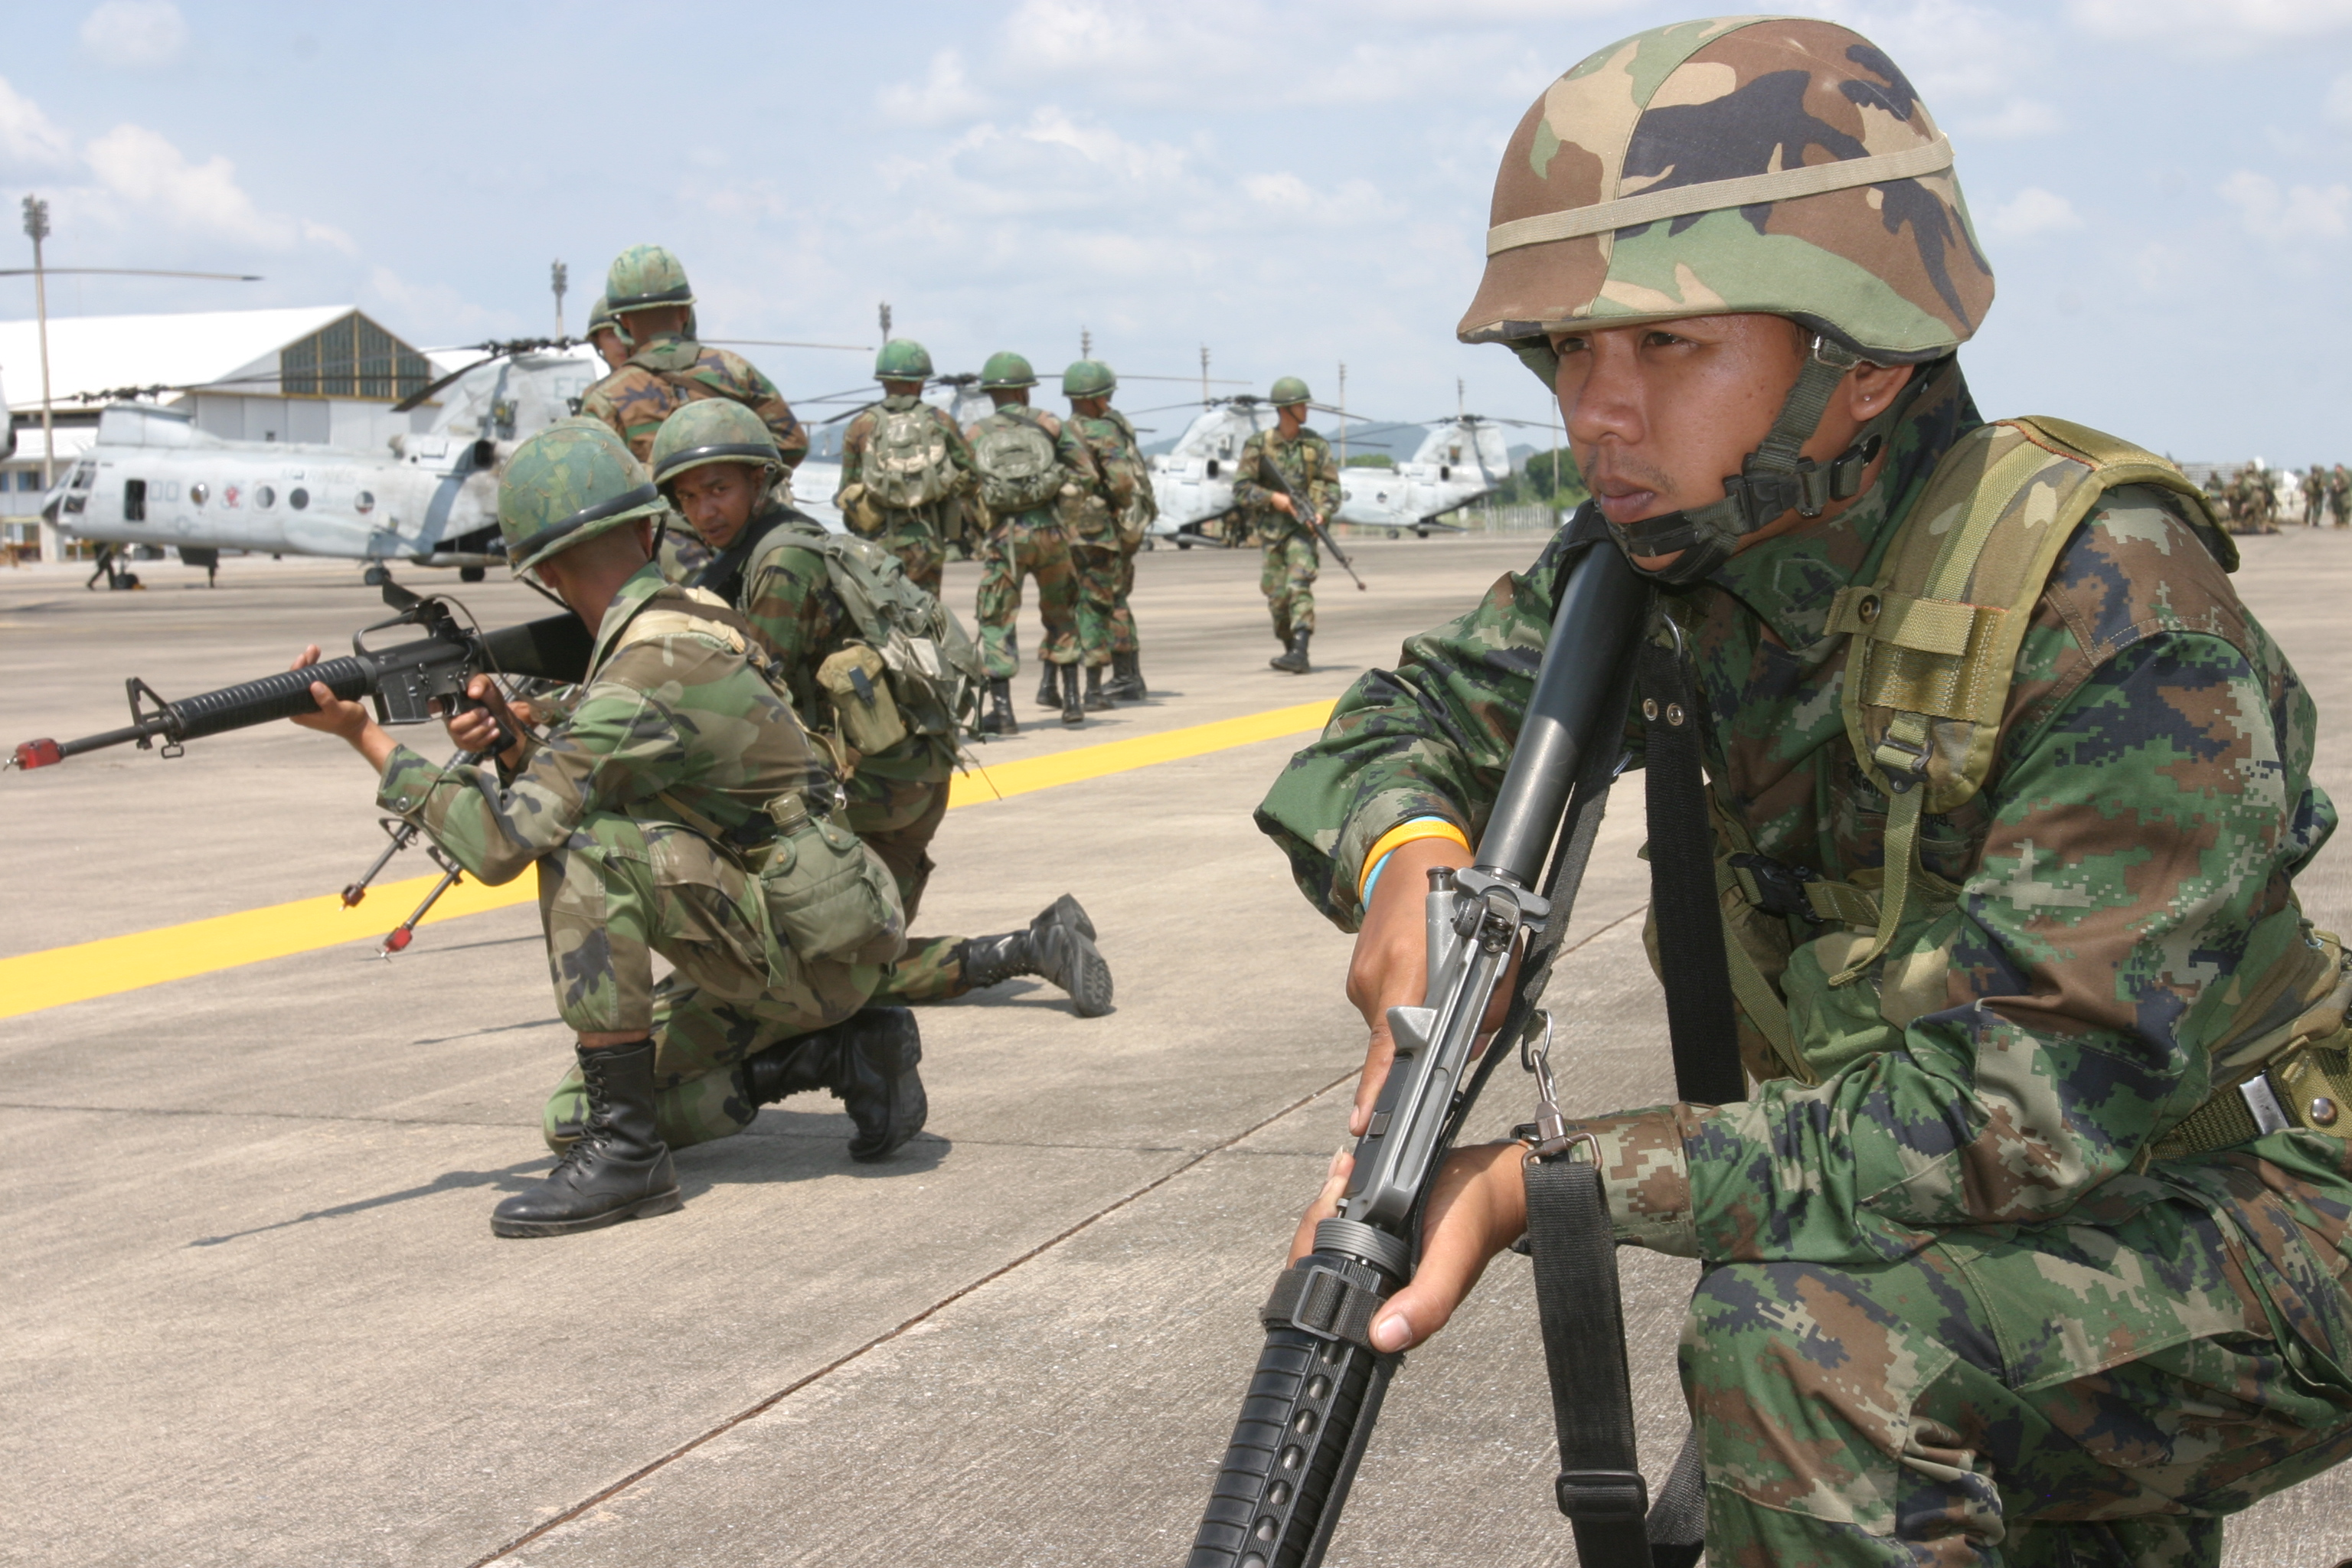 File:Thai Marines at U-Tapao Royal Thai Navy Airfield during